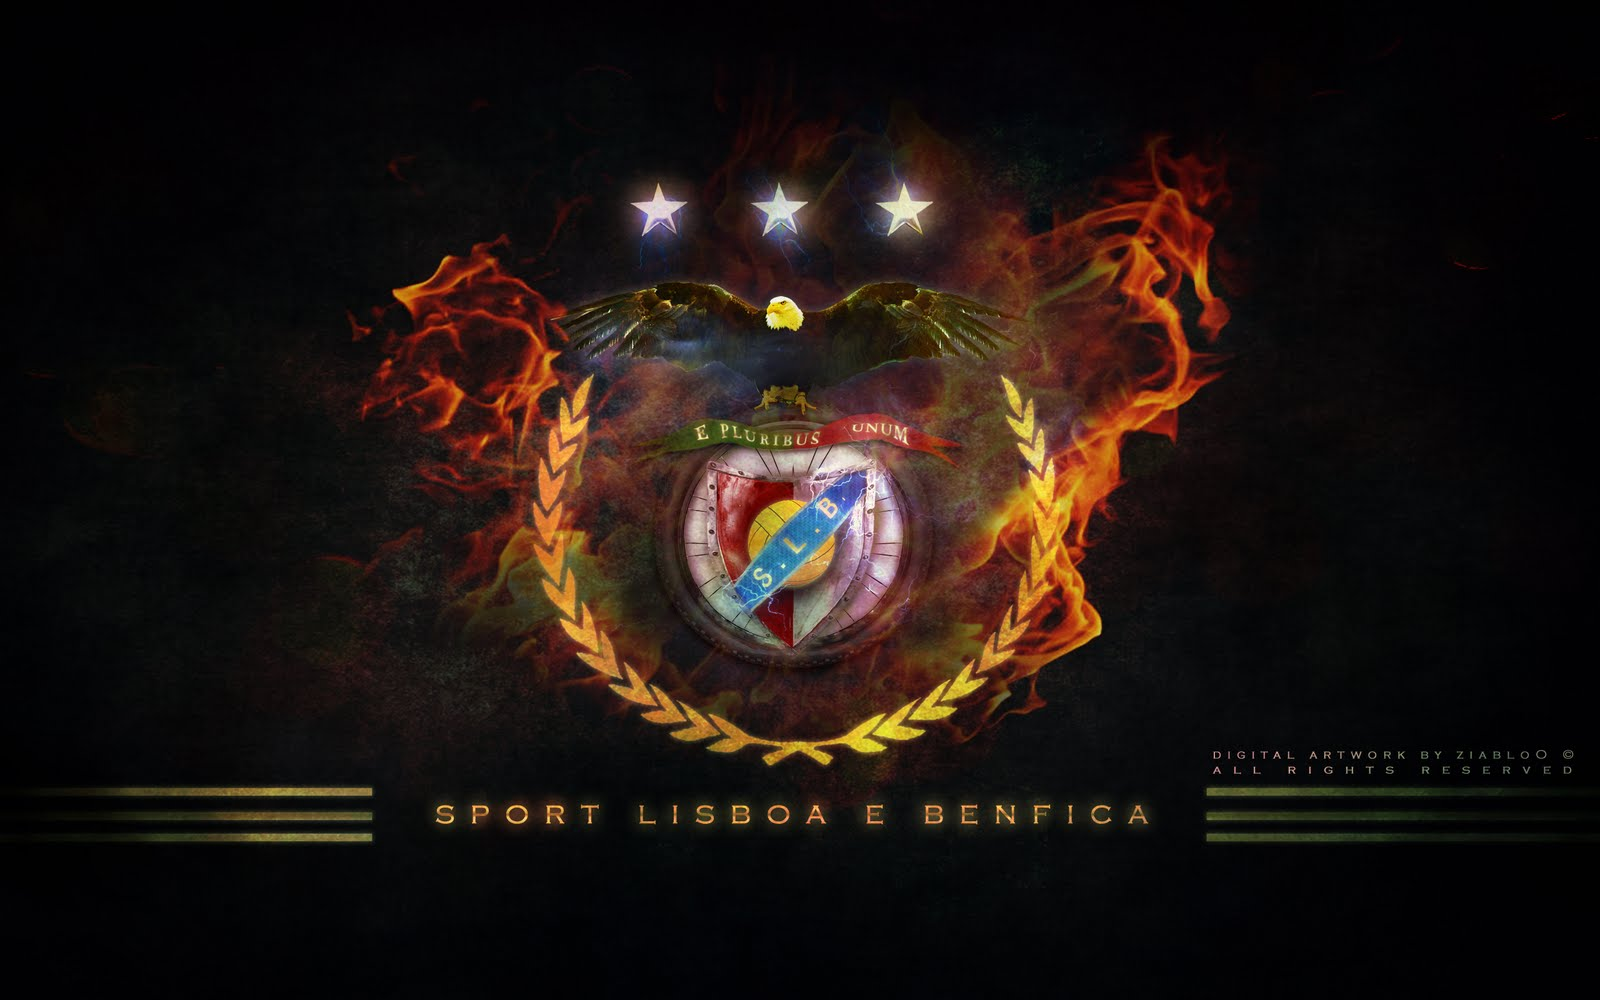 Benfica background